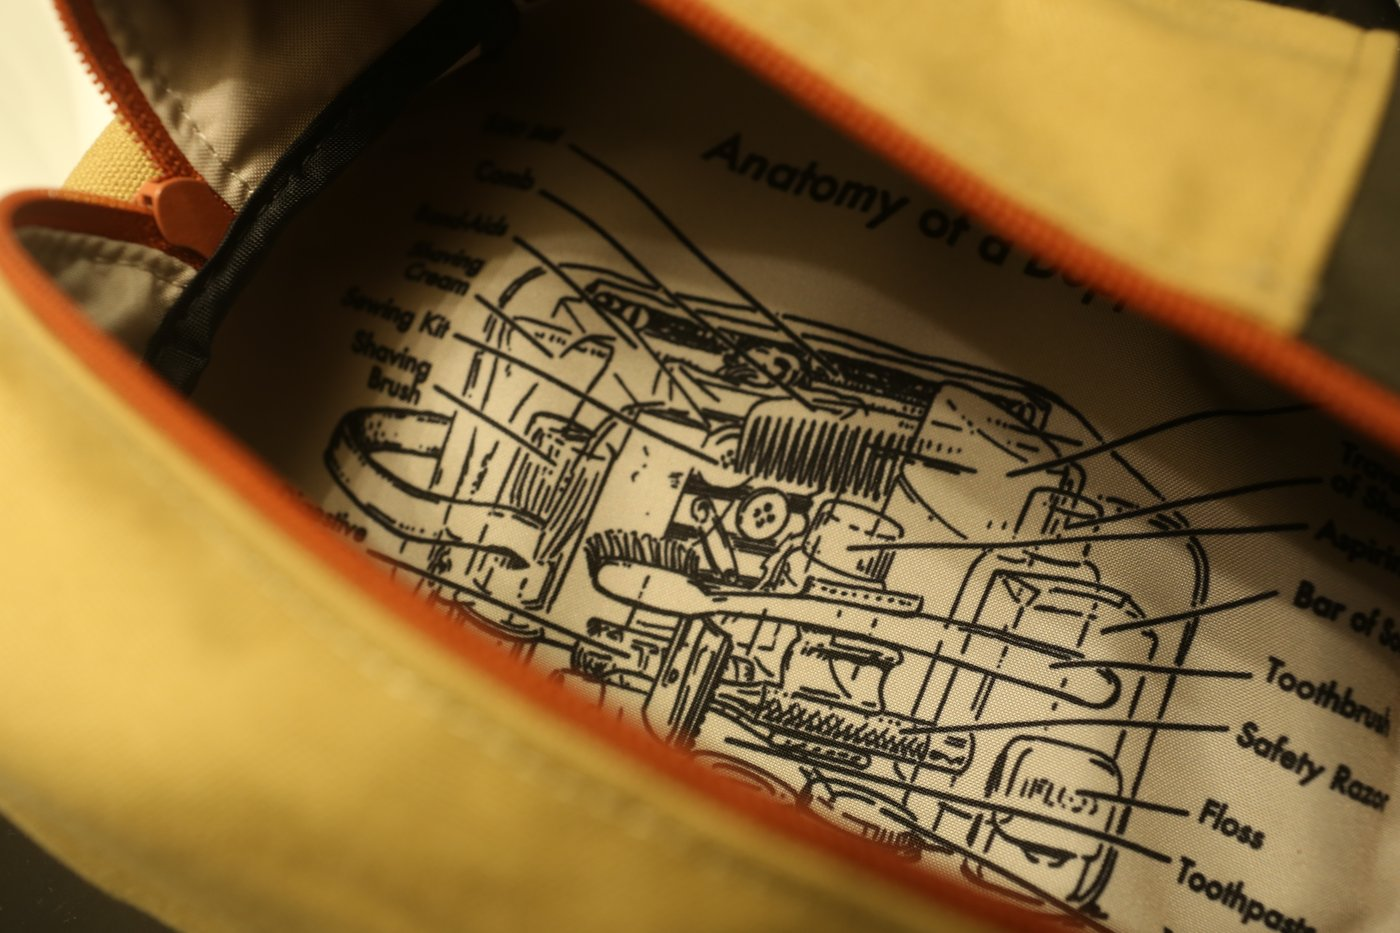 Anatomy of dopp kit present in a bag.